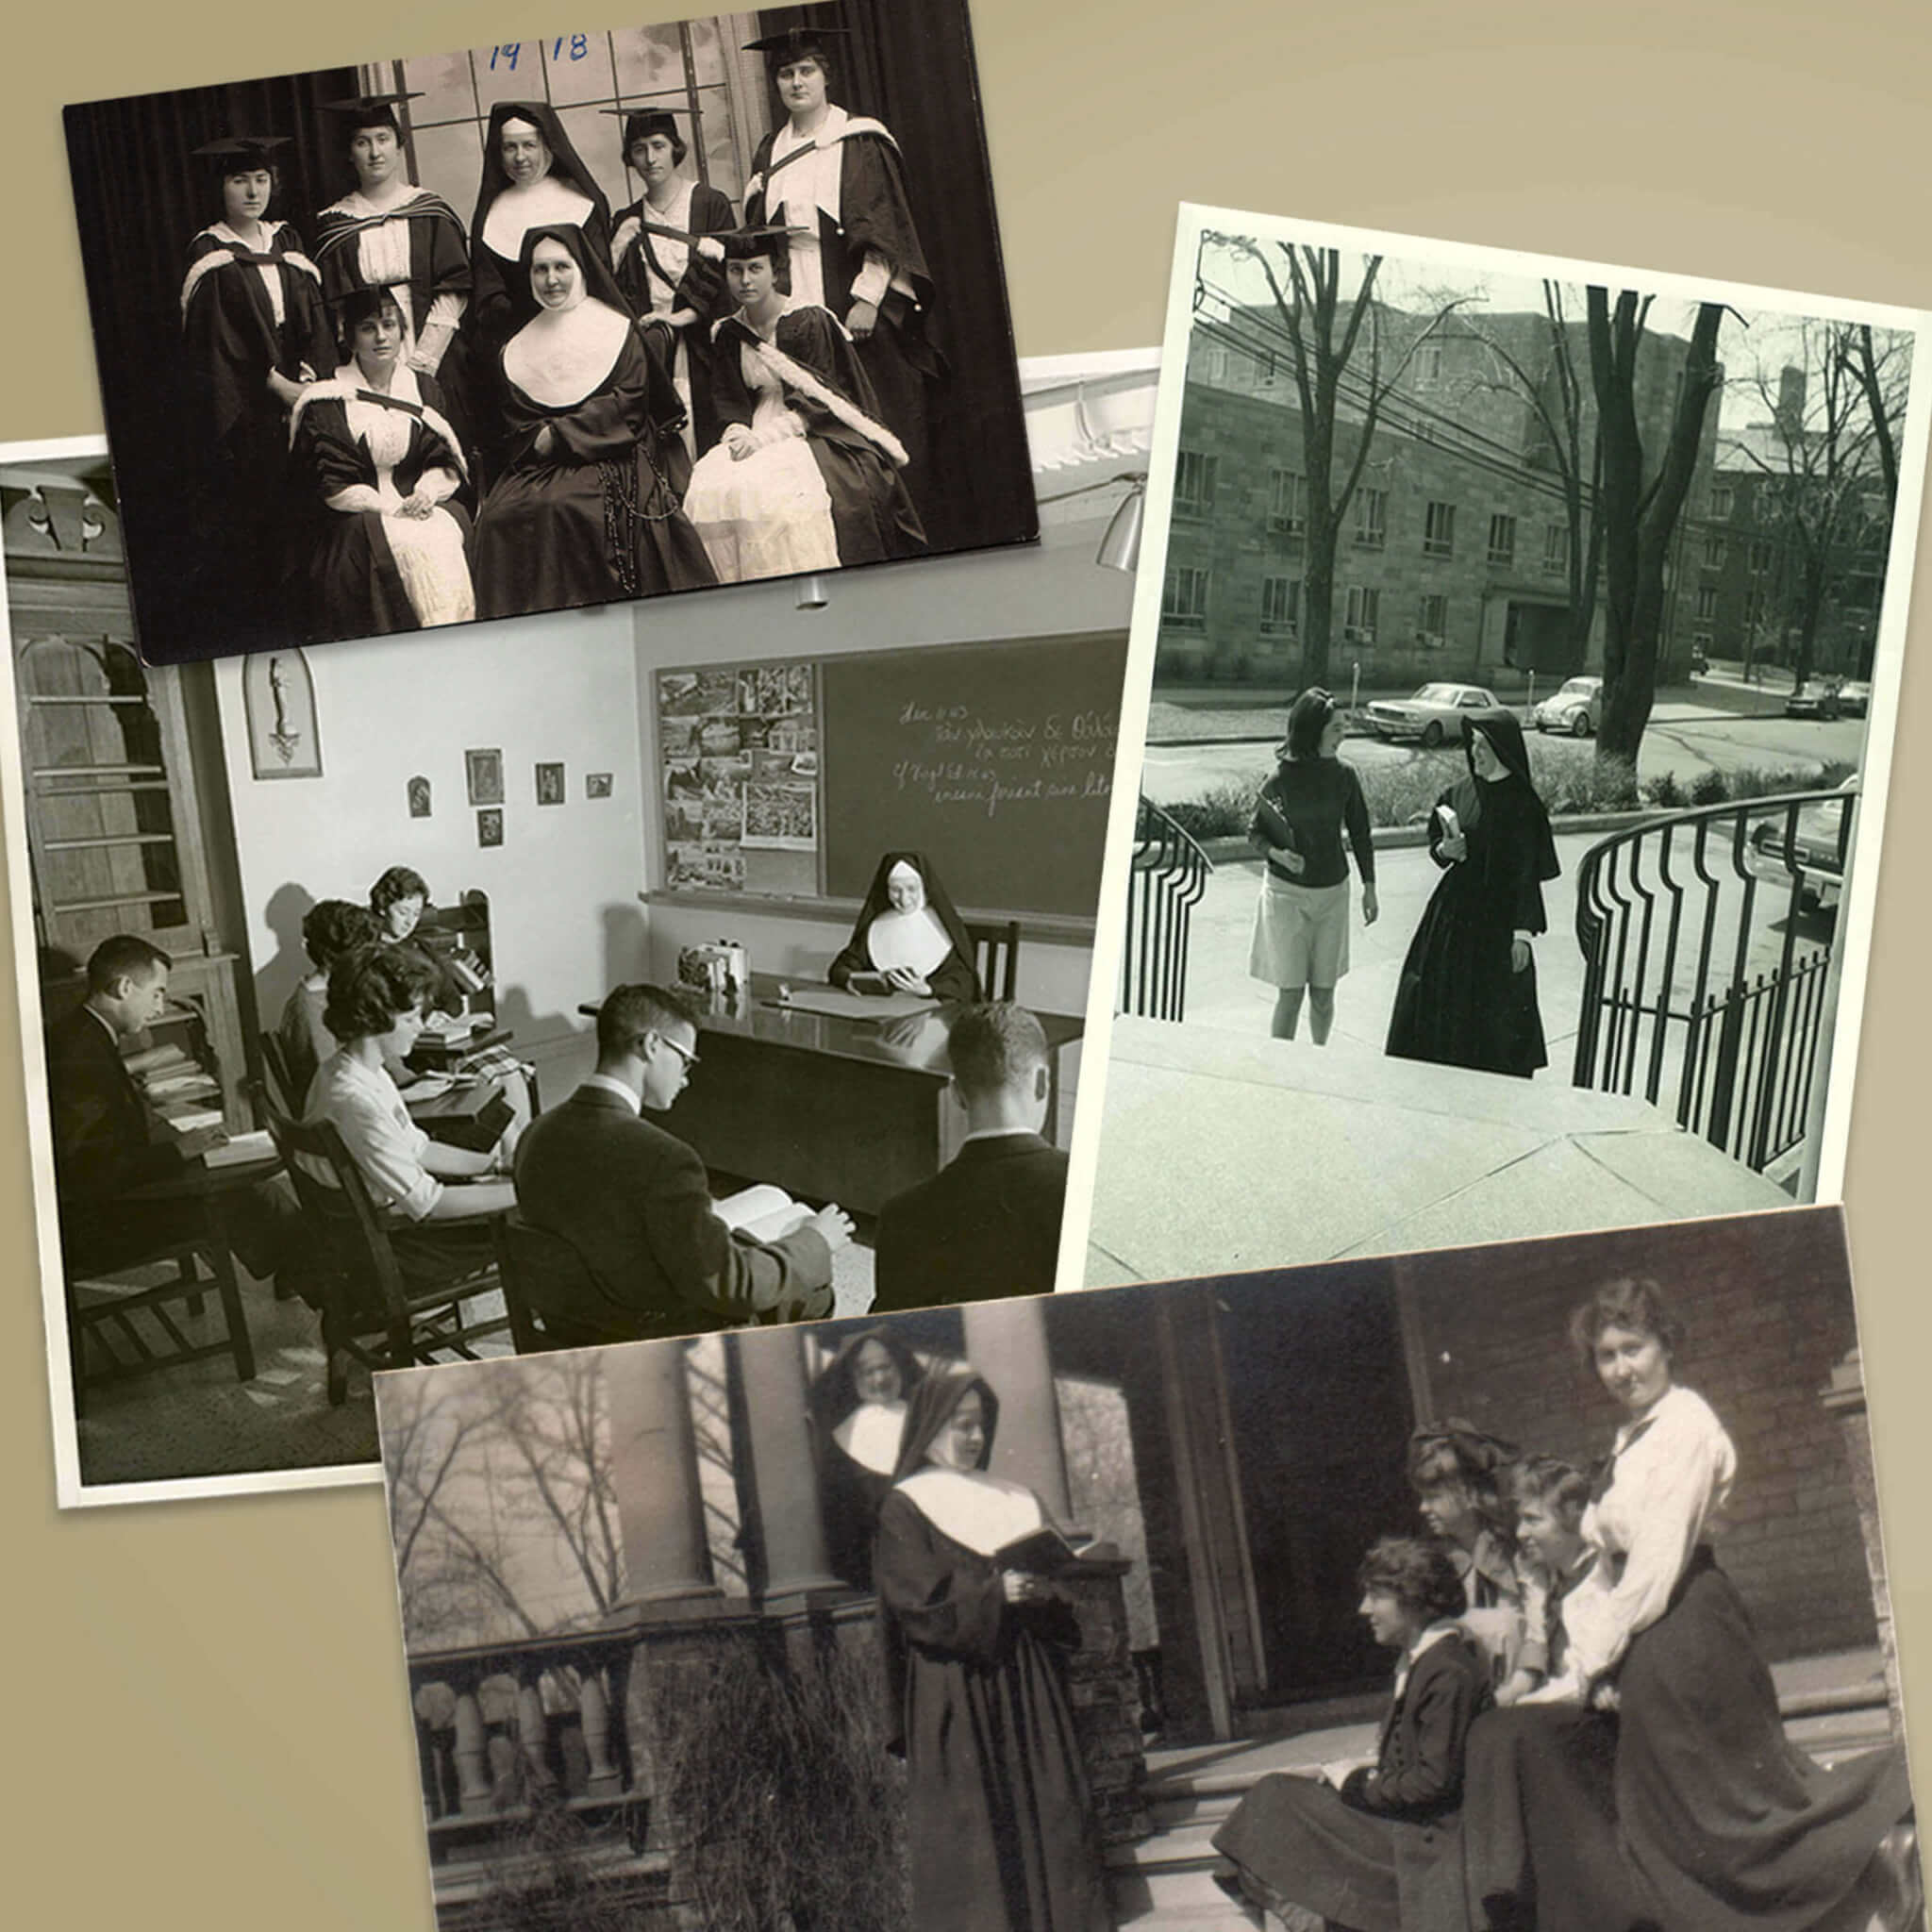 100 Years of Women's Education at St. Michael's College: 1911-2011